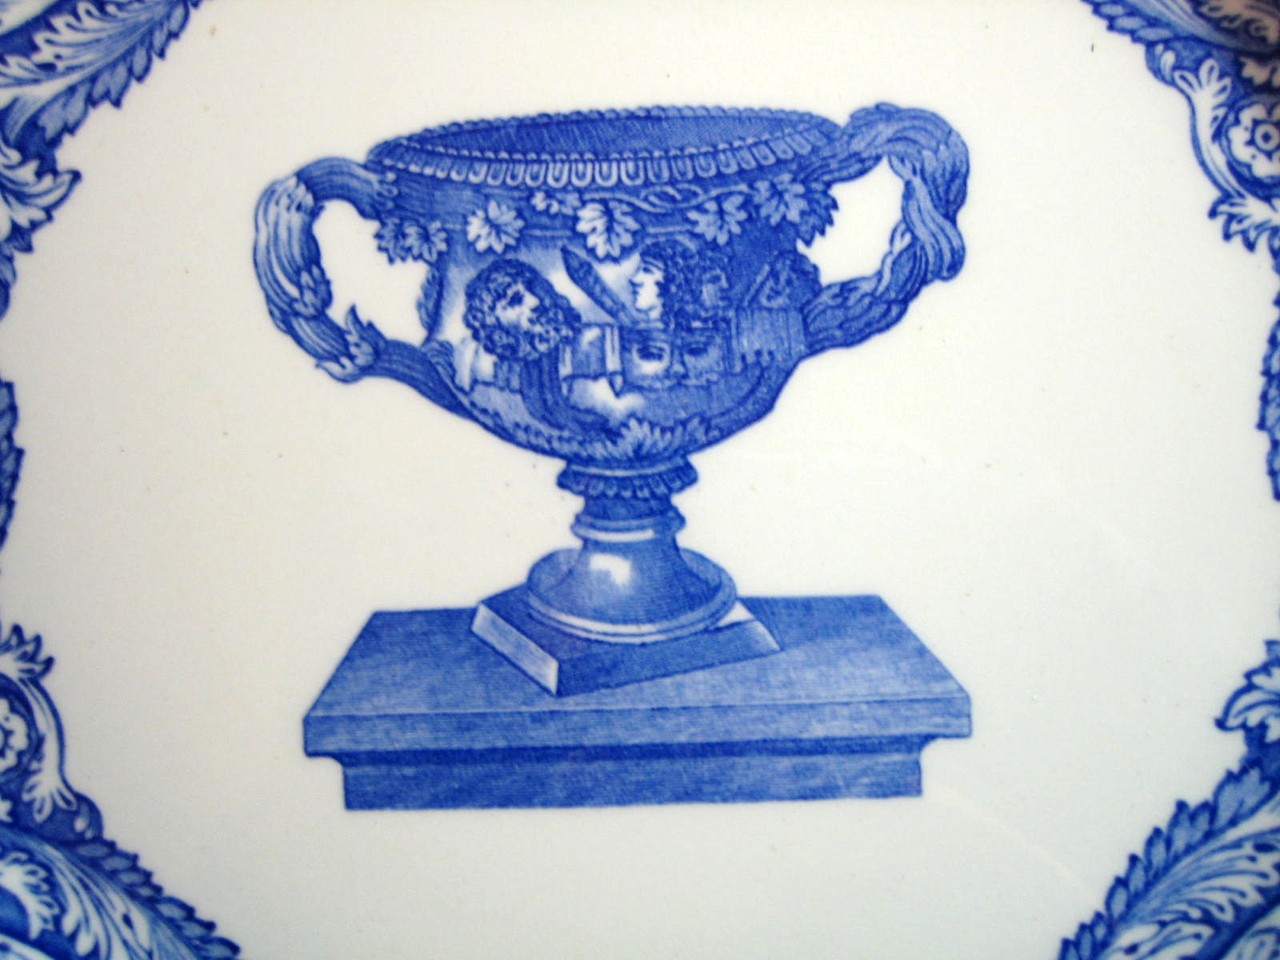 Blue Toile Transferware Grecian Loving Cup Scroll Edge Large Plate Center www.DecorativeDishes.net